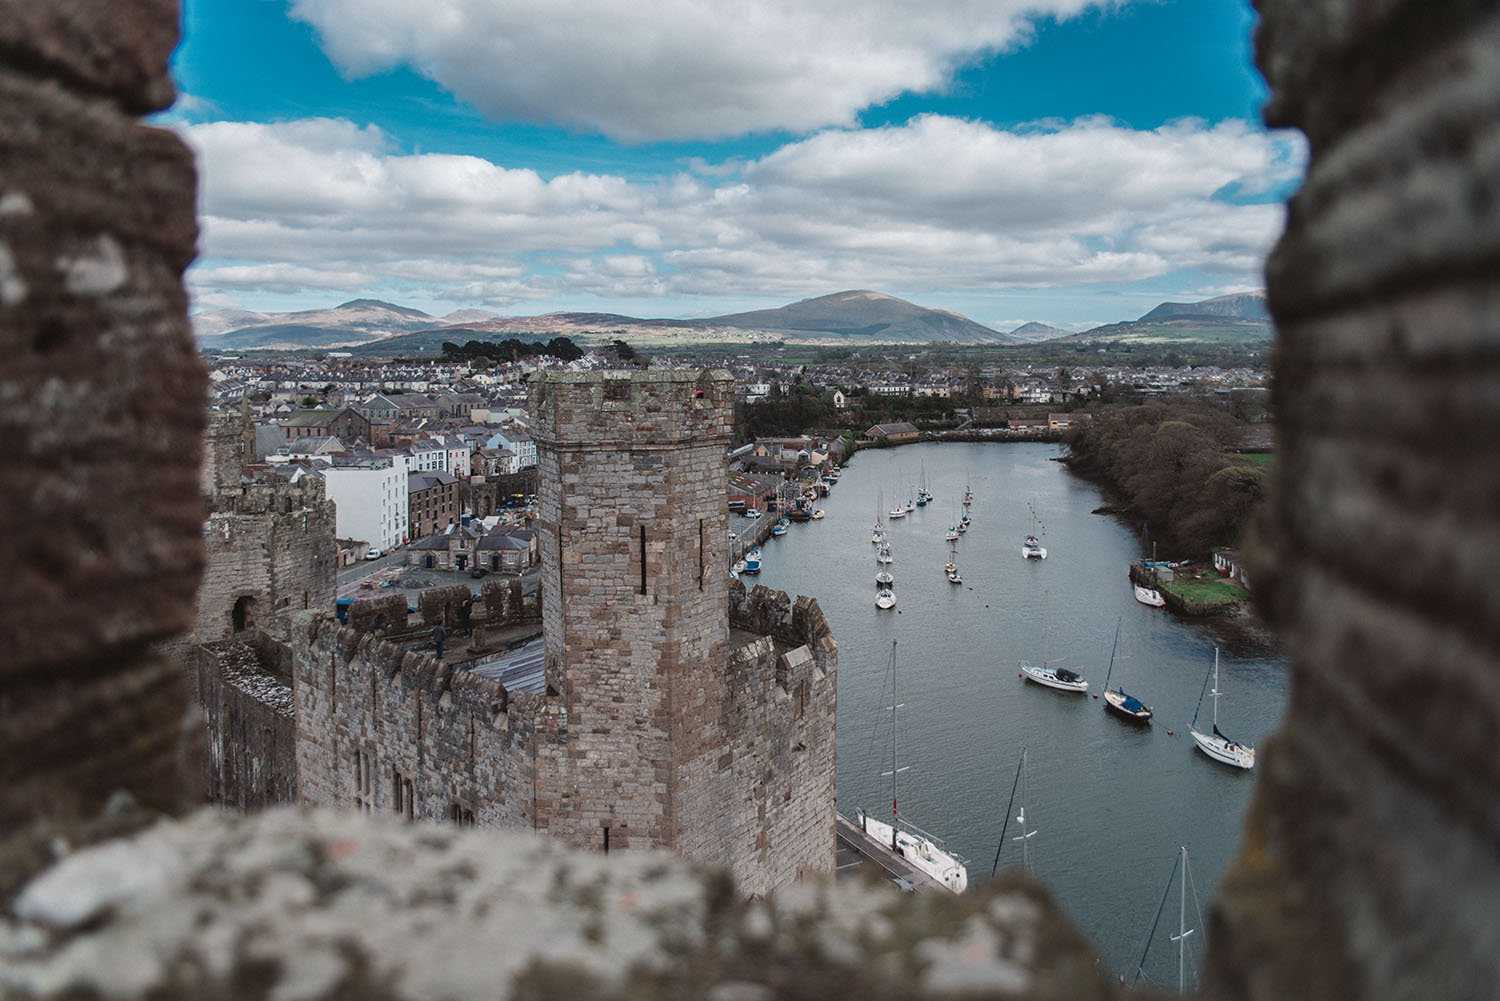 Tower view from Caernarvon Castle in Wales